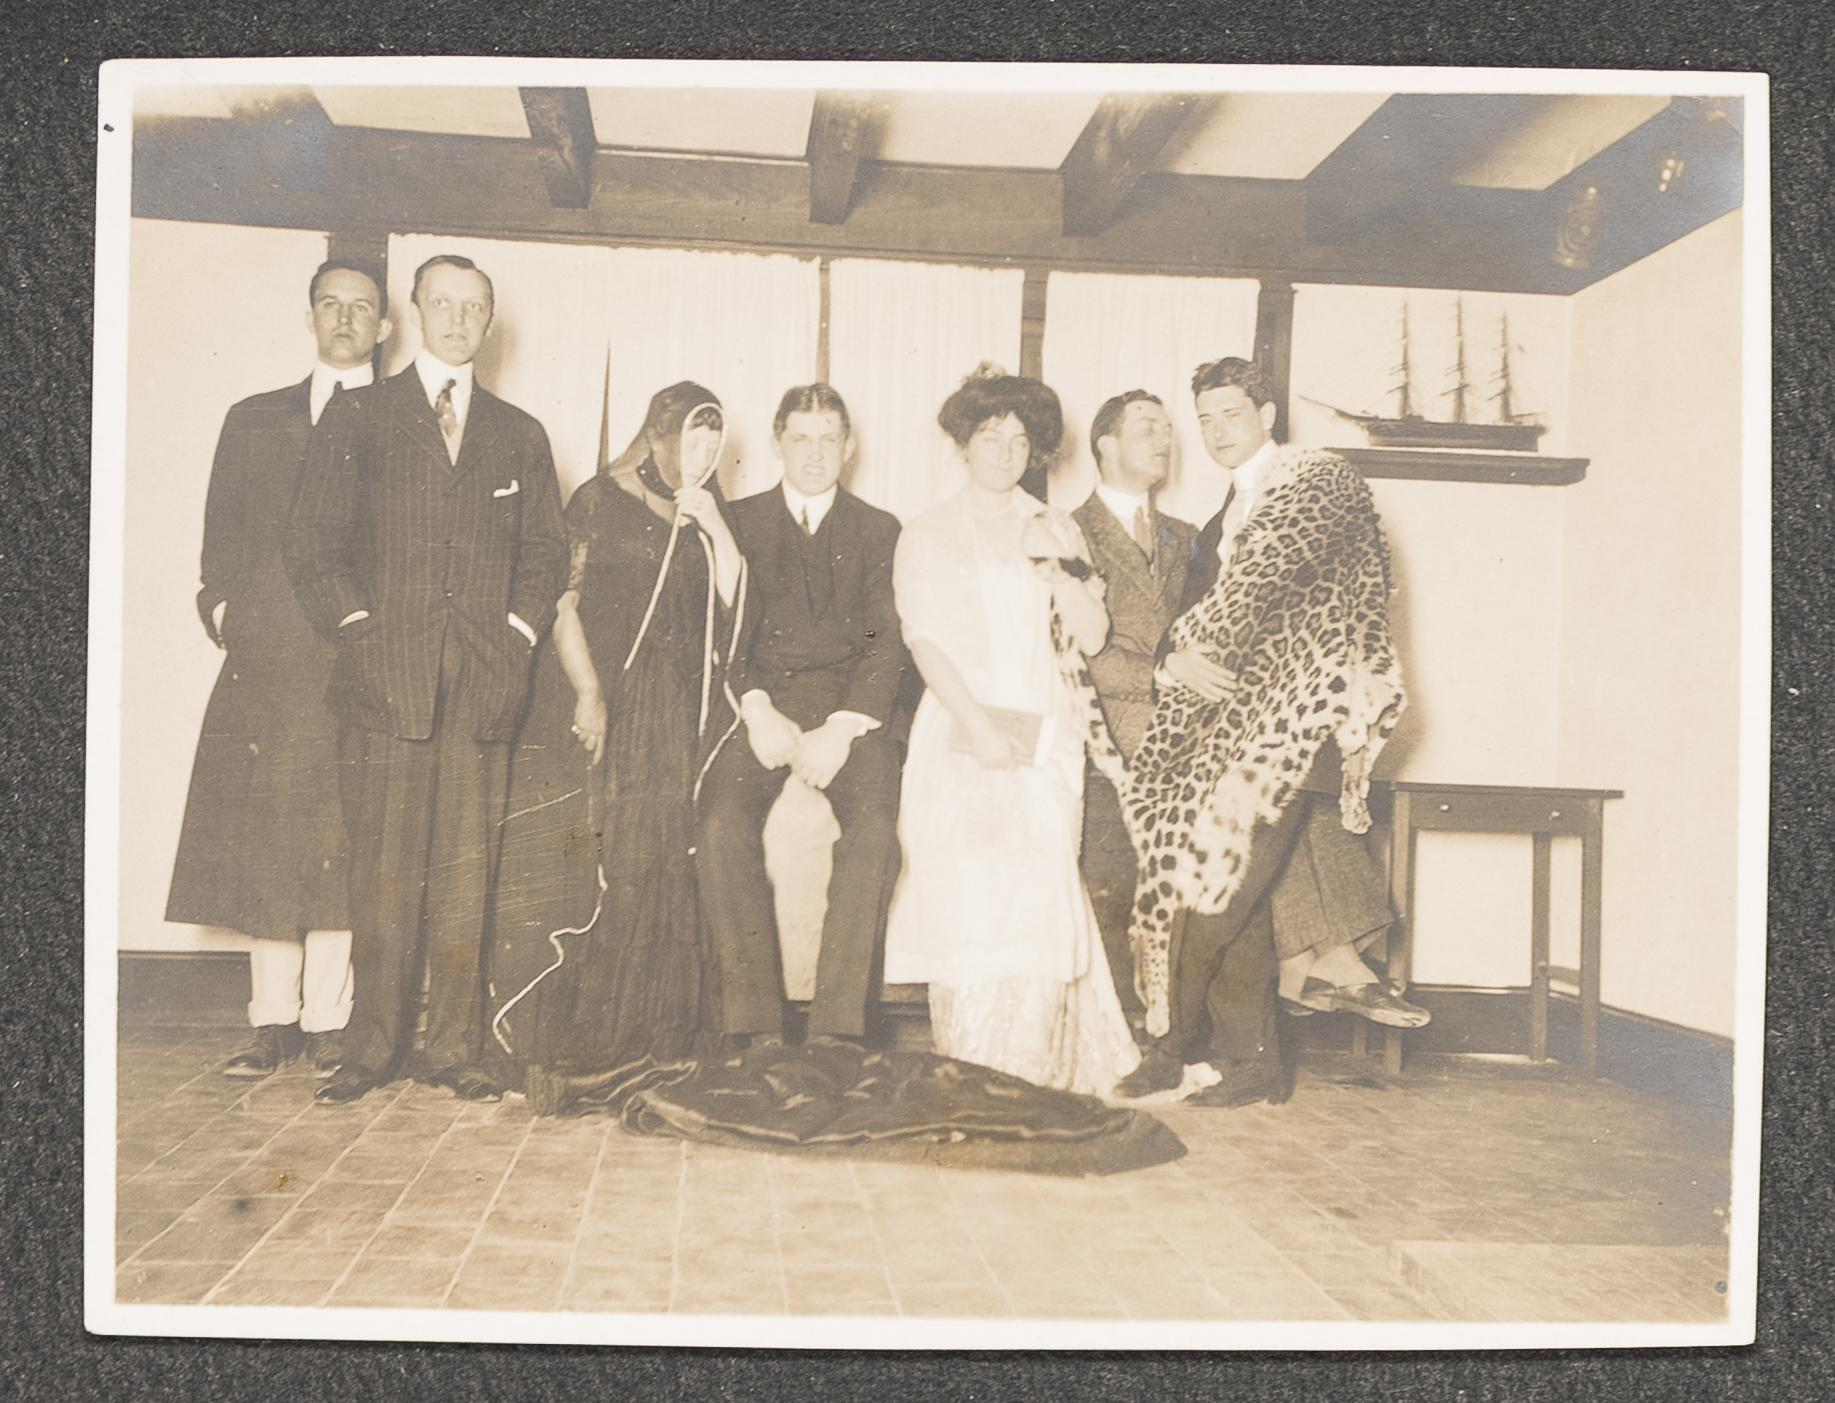 Black and white photo of 7 people, one wearing a tiger pelt